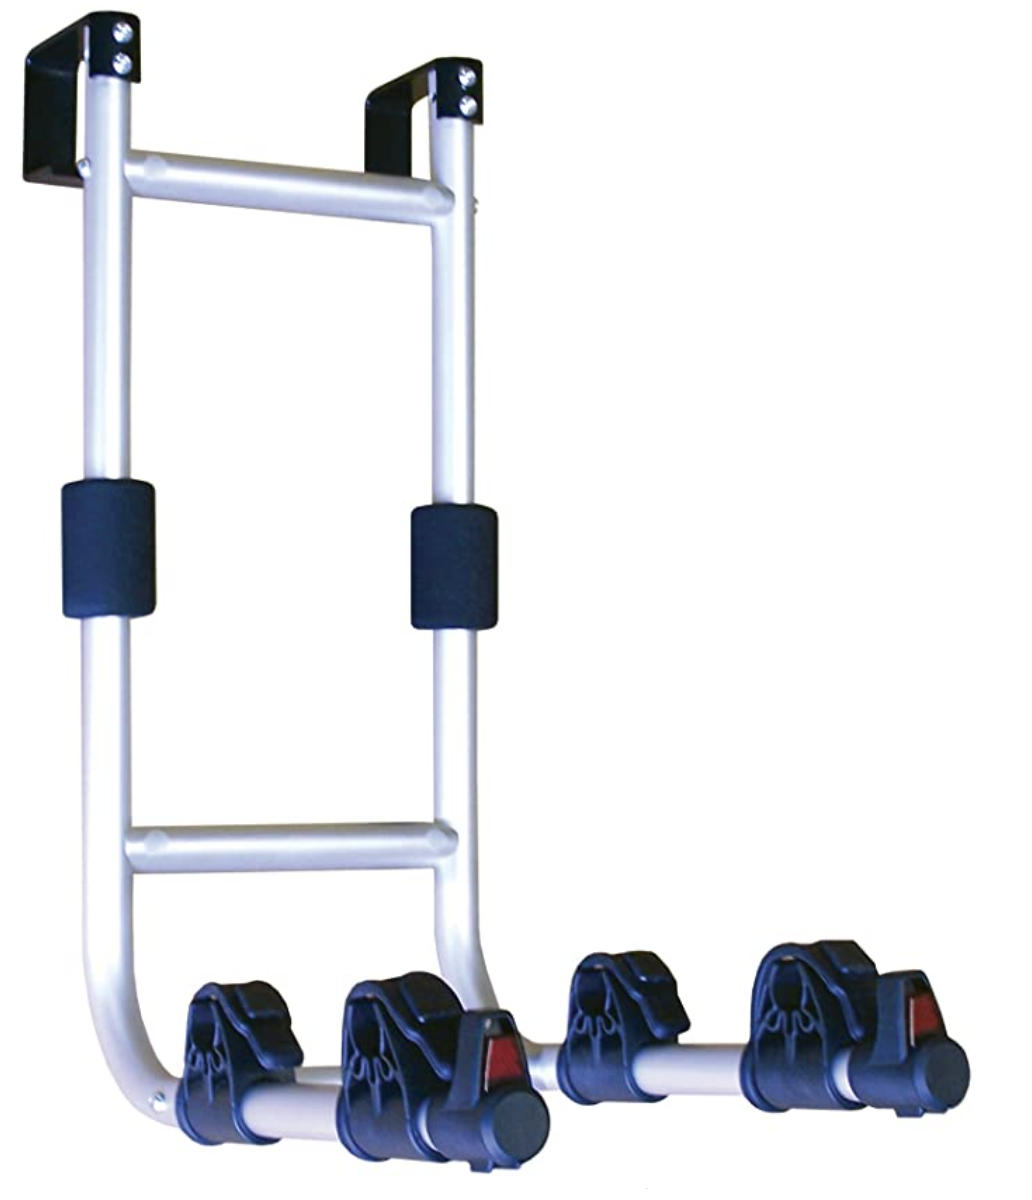 Swagman LADDER RACK RV Approved